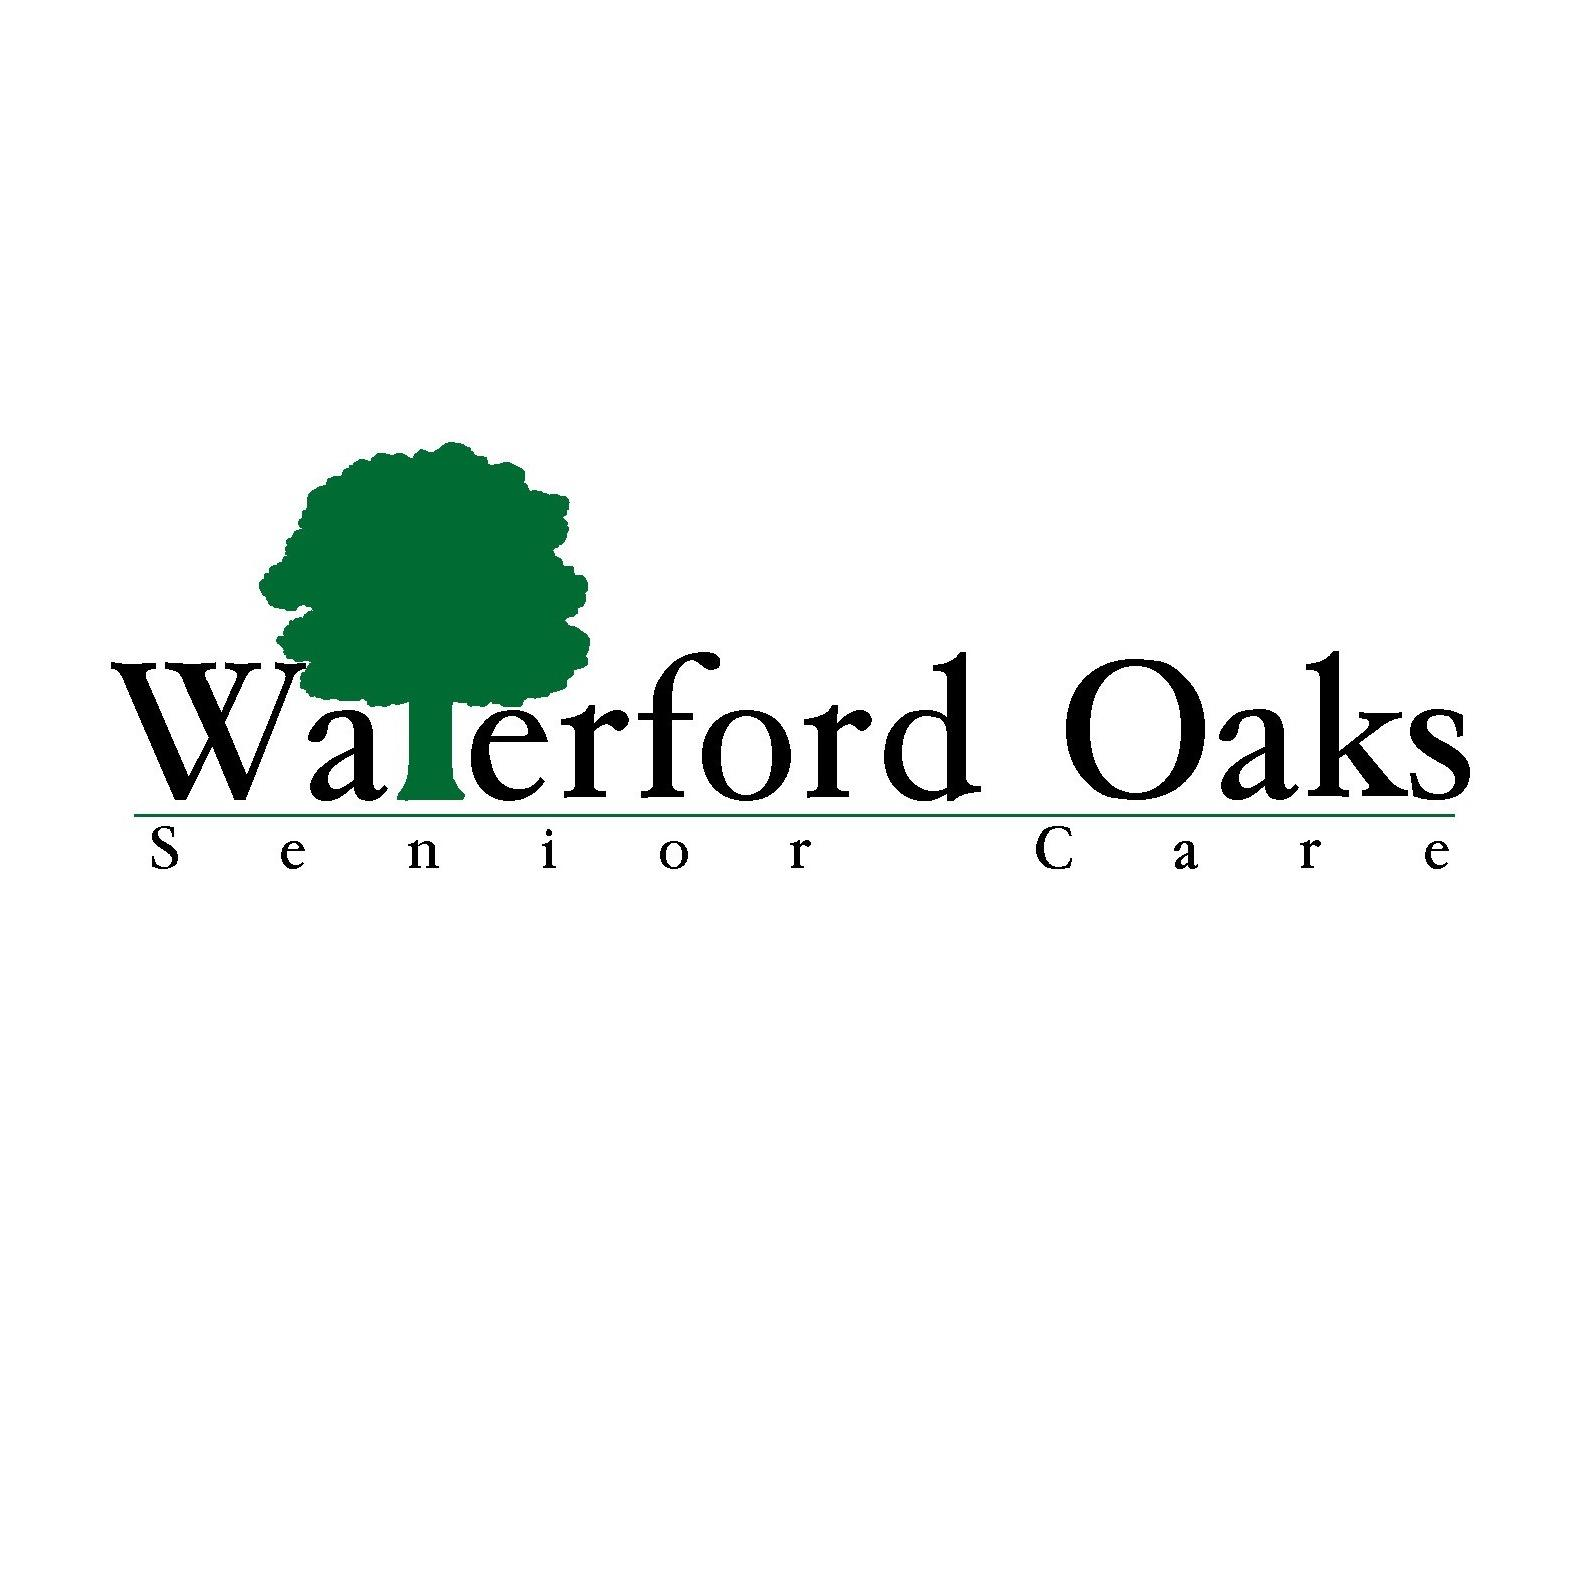 Waterford Oaks Senior Care West